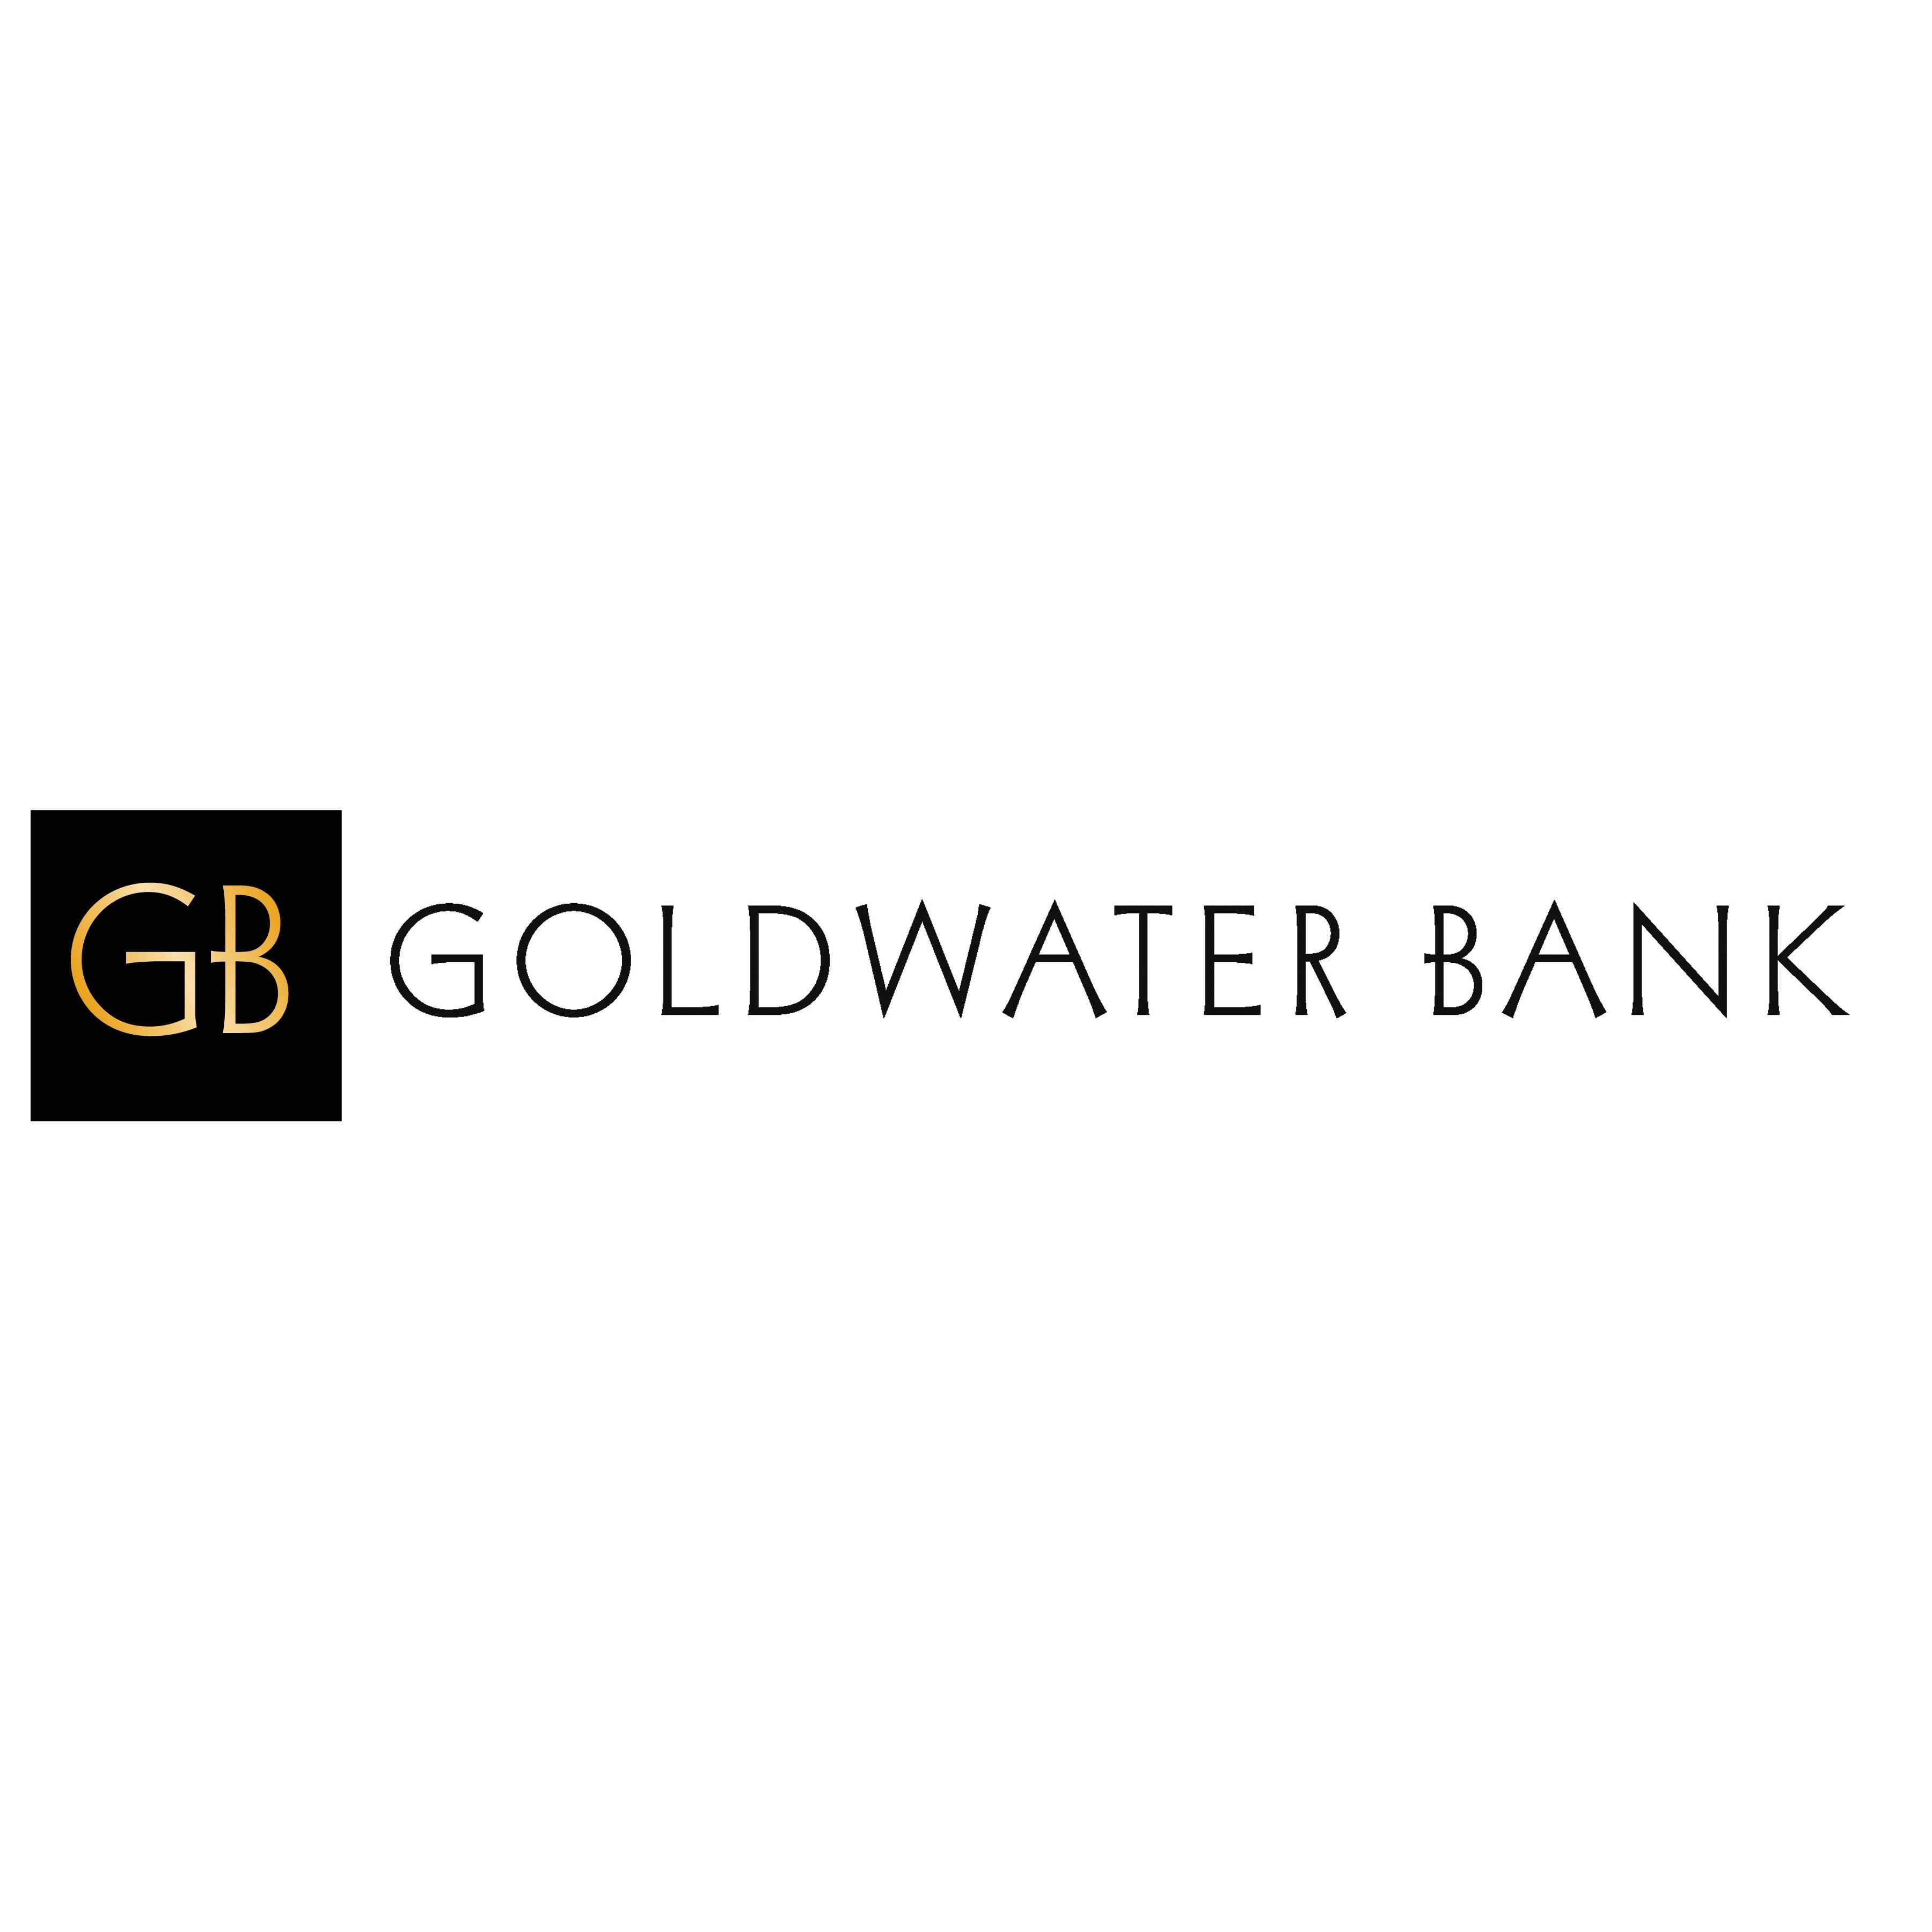 Jake O'Leary | Goldwater Bank